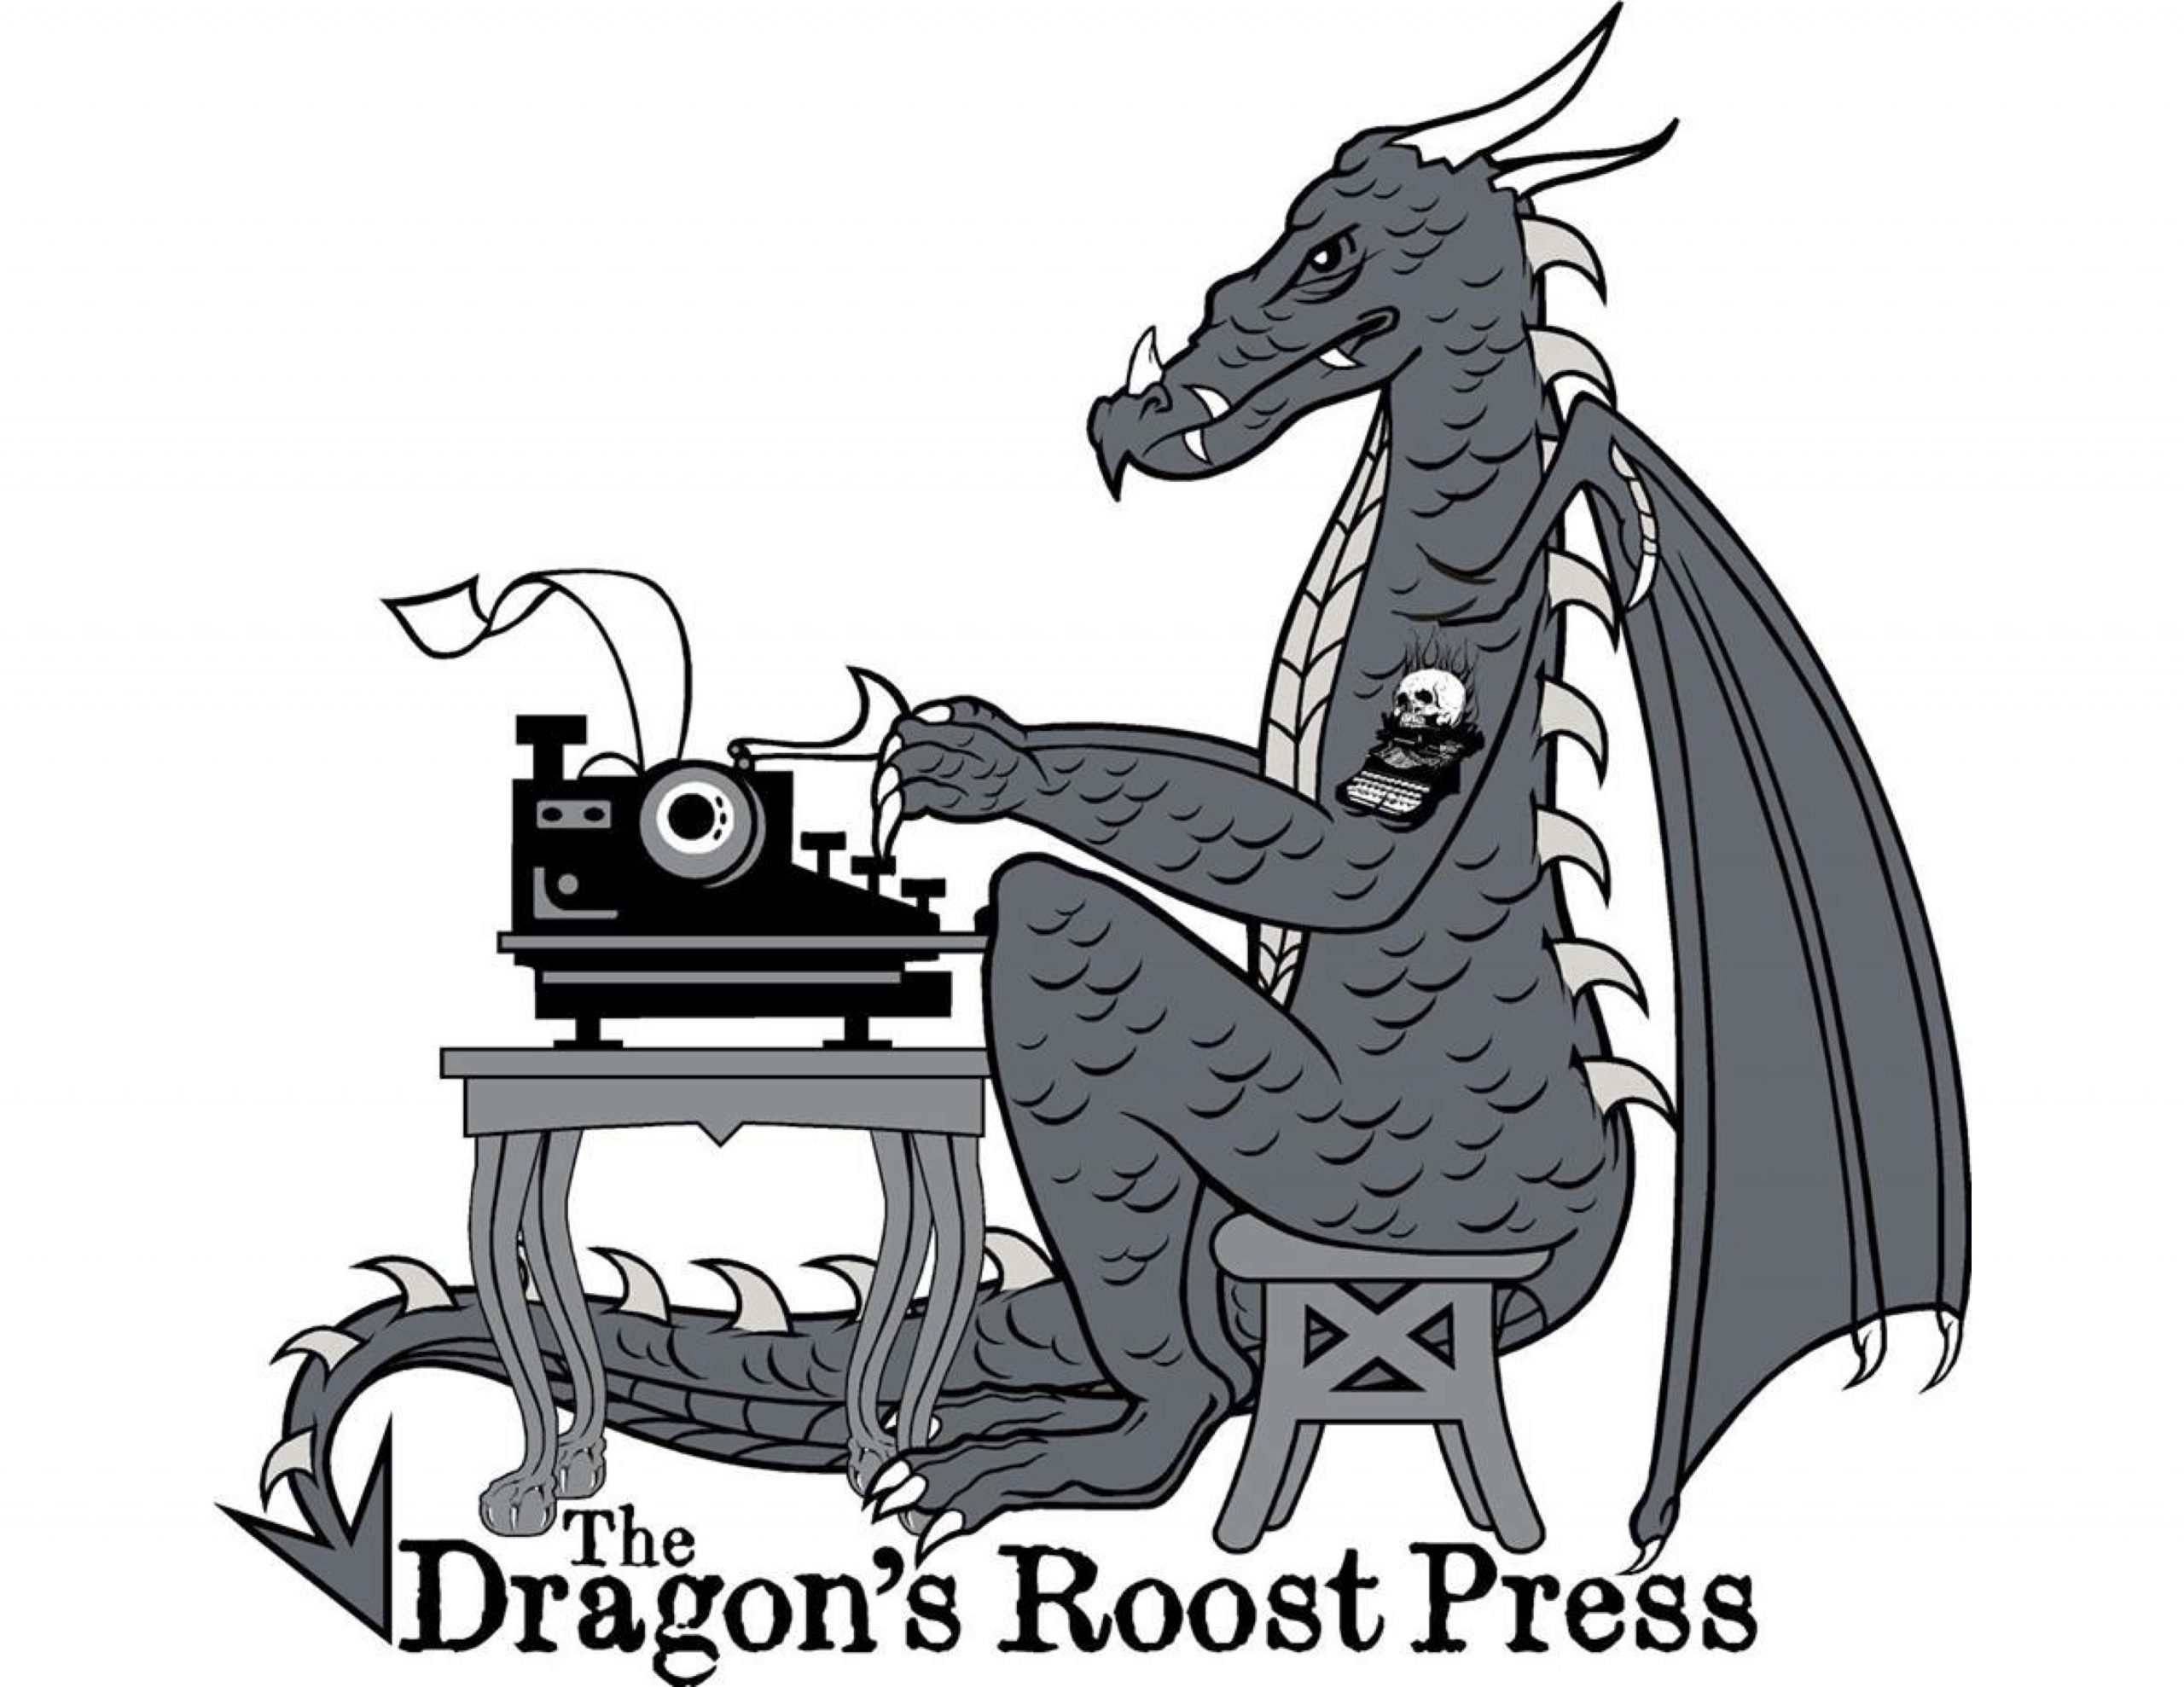 Dragon's Roost Press